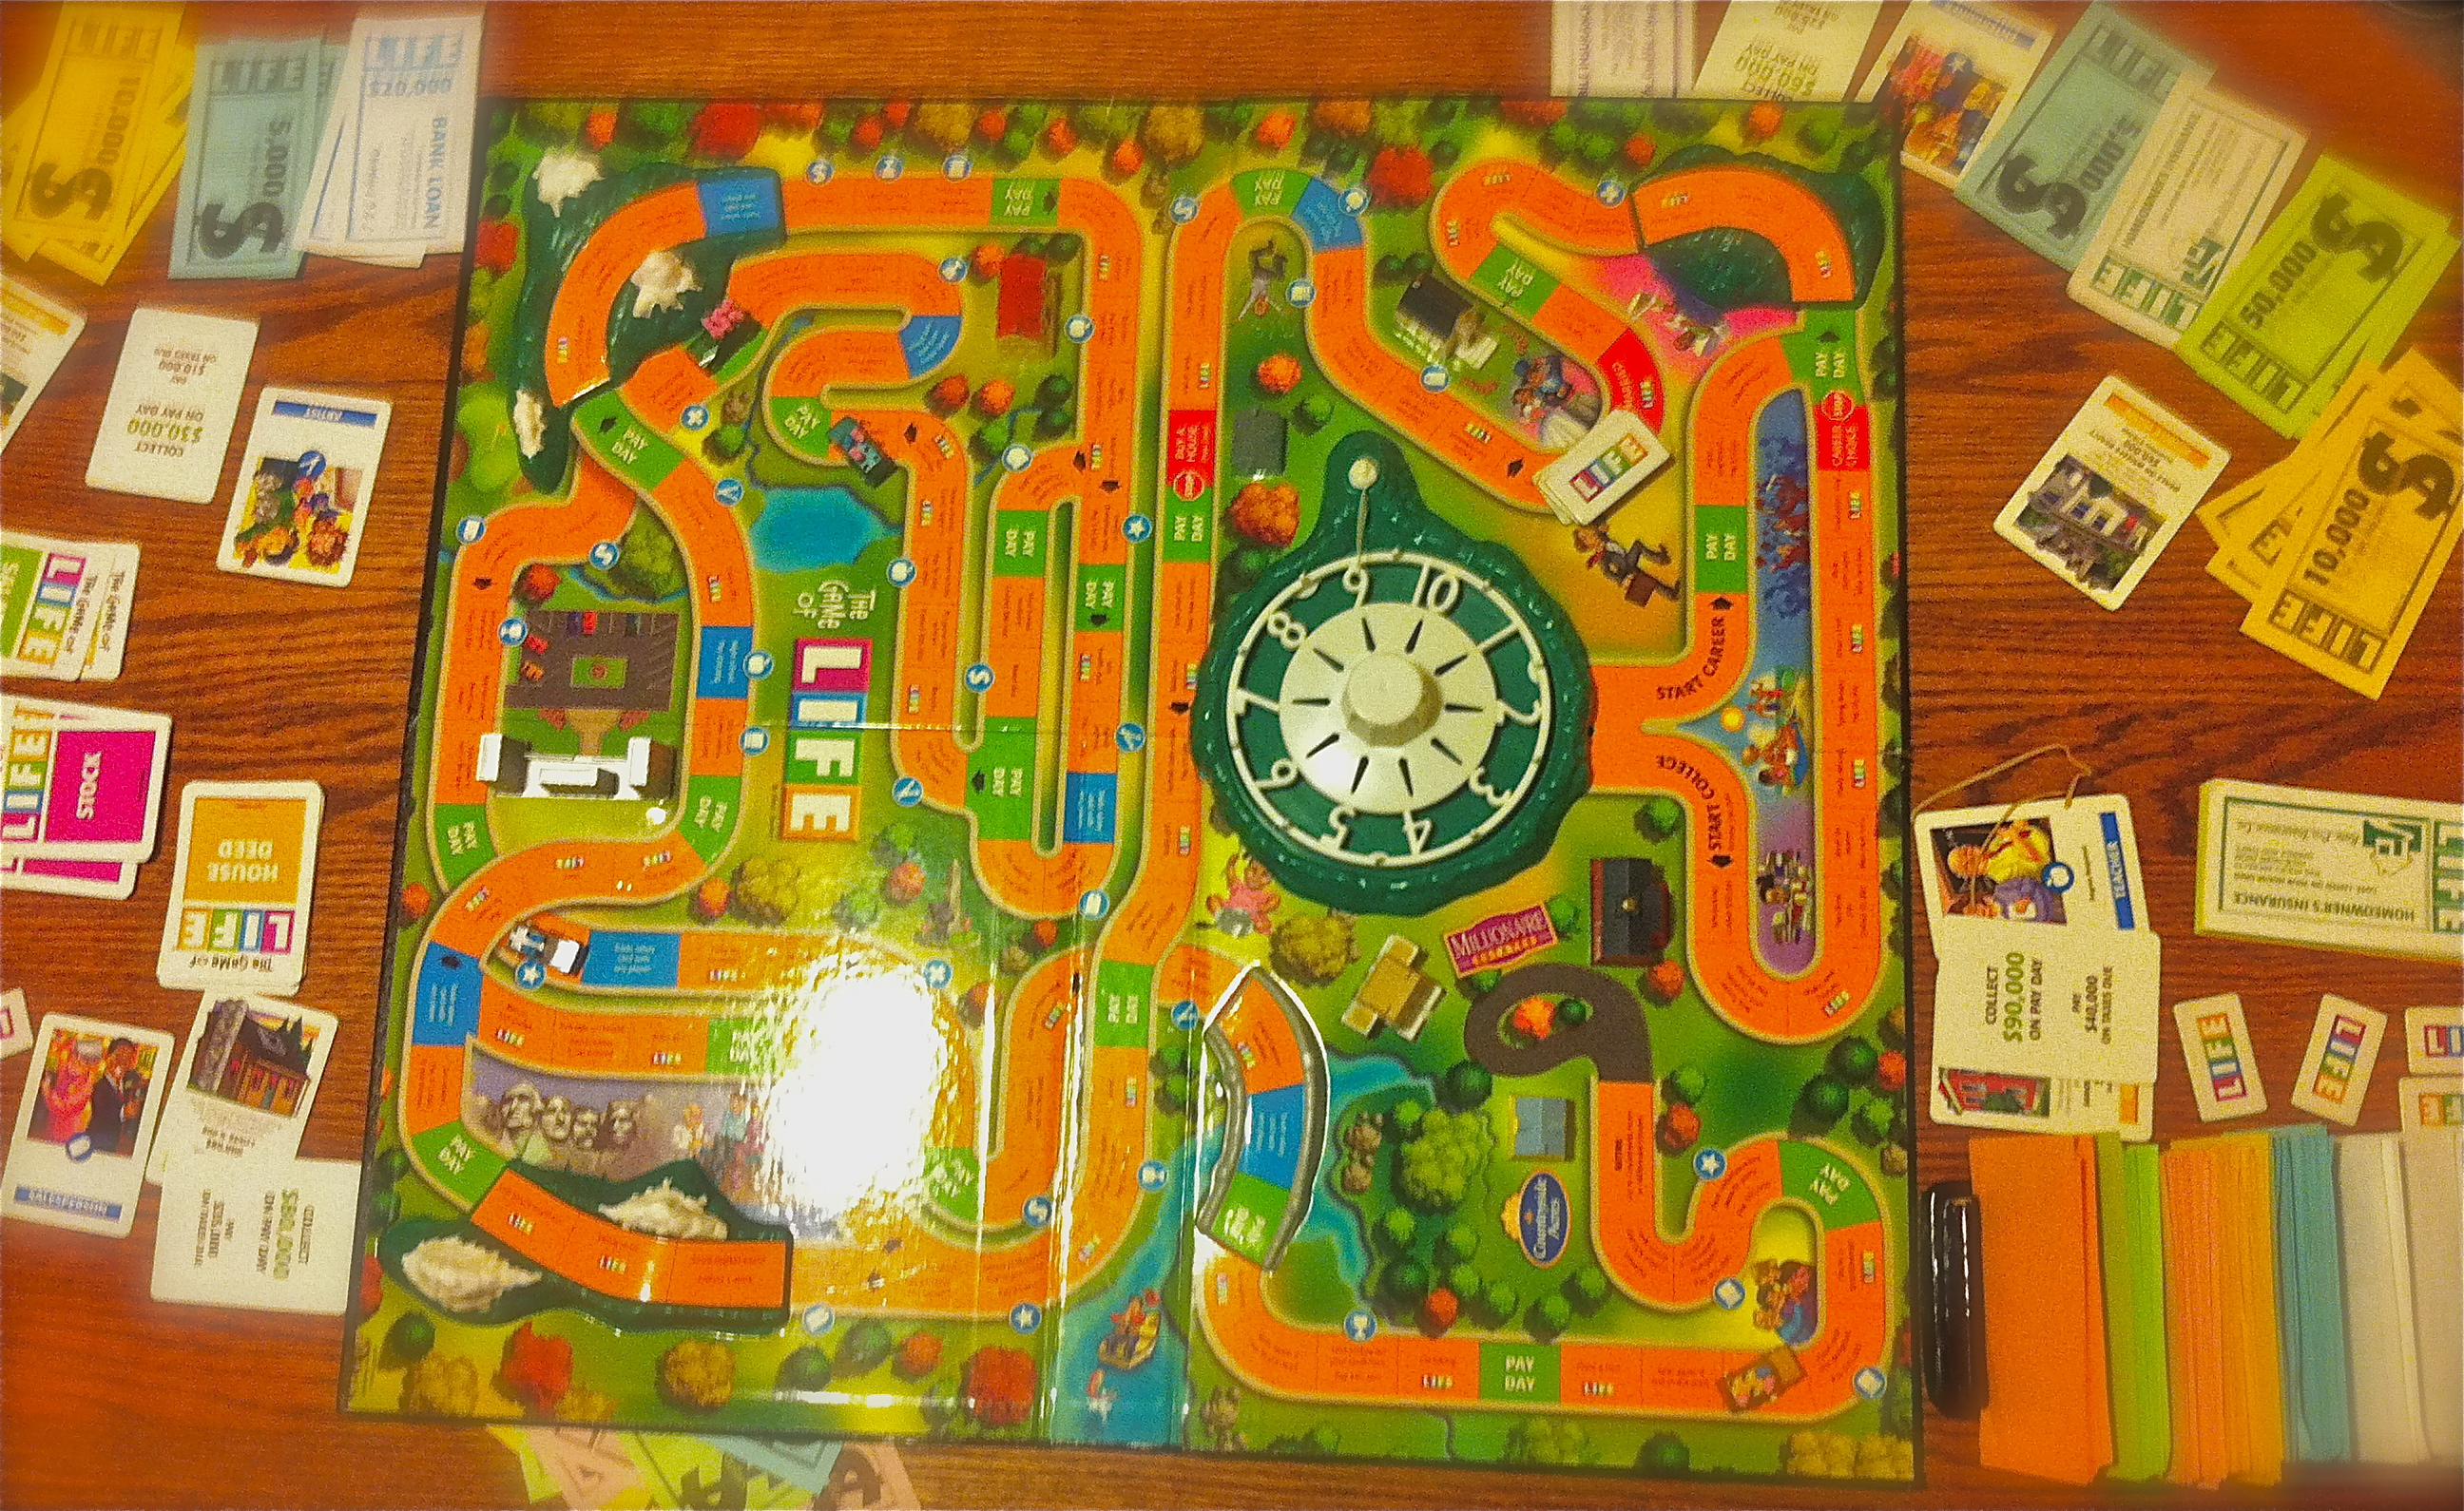 The Game of Life is an Awesome